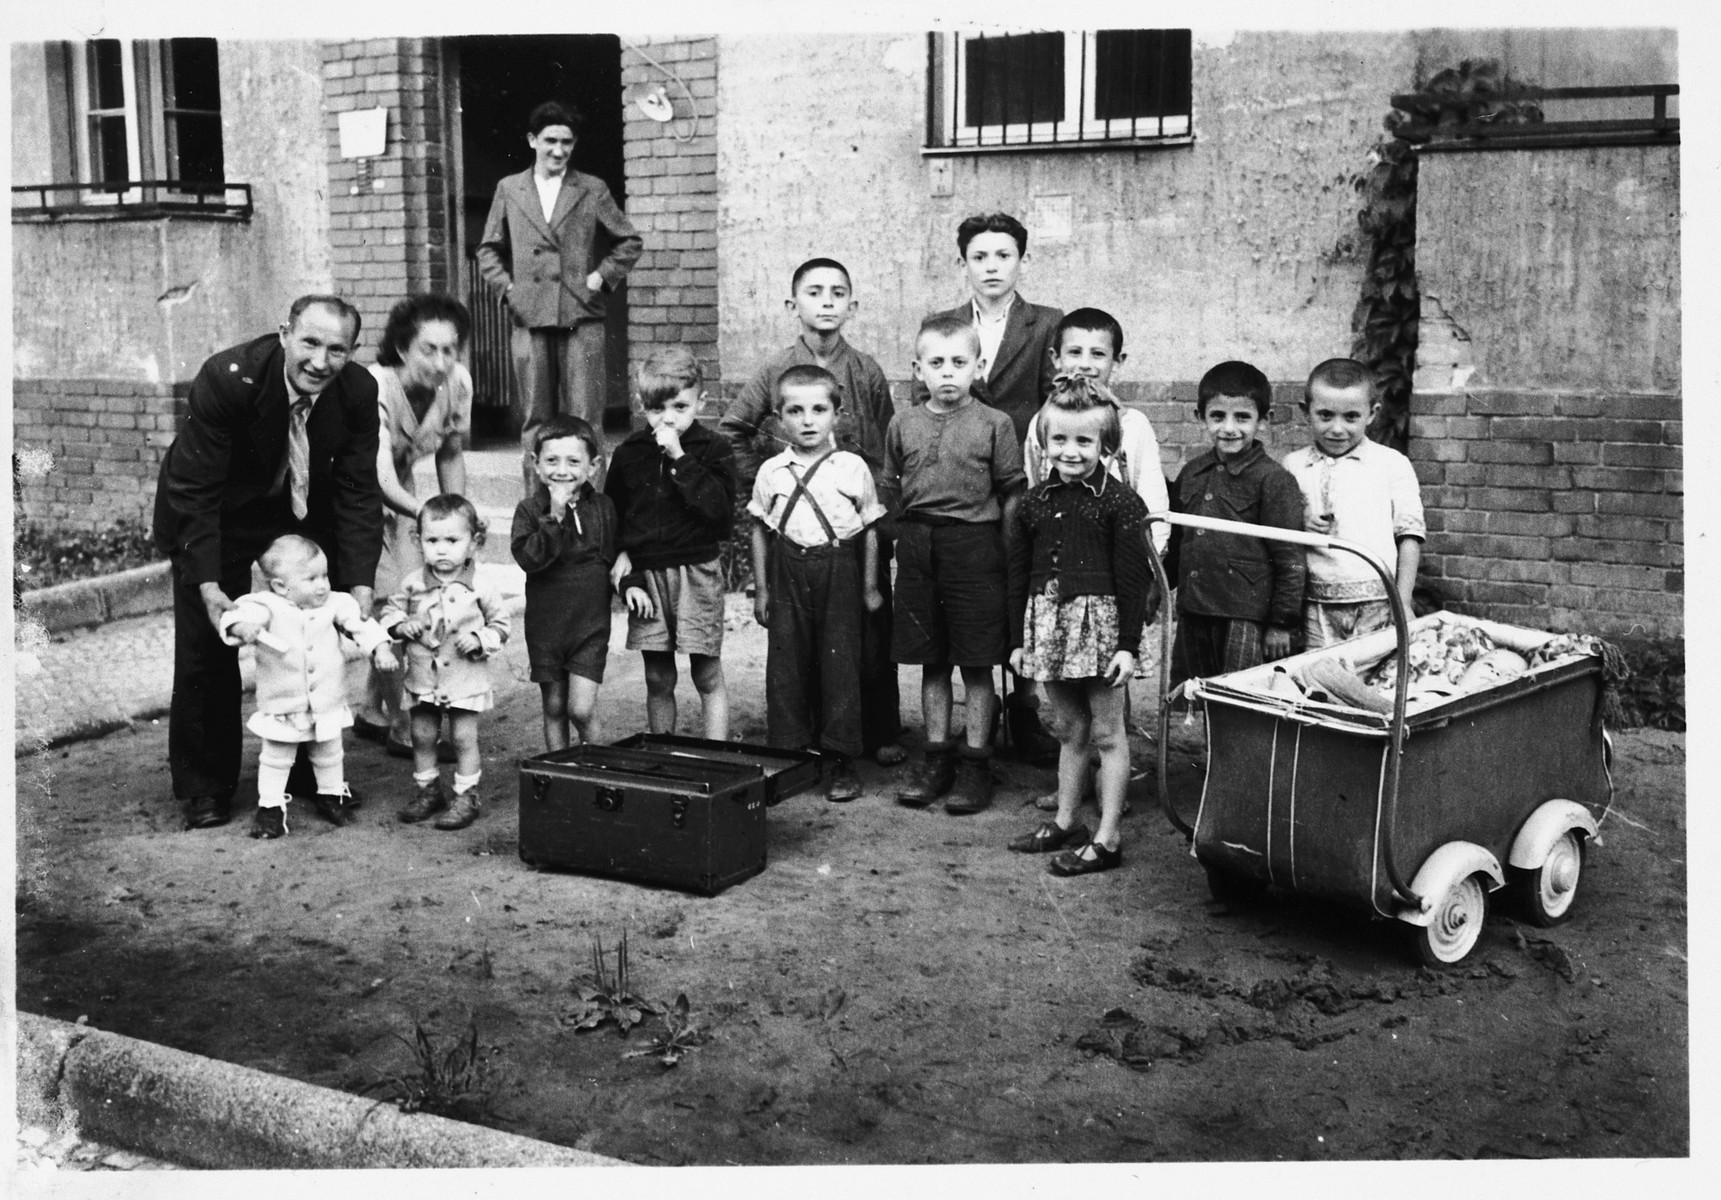 Jewish DP children pose outside a building in the Mariendorf displaced persons camp.